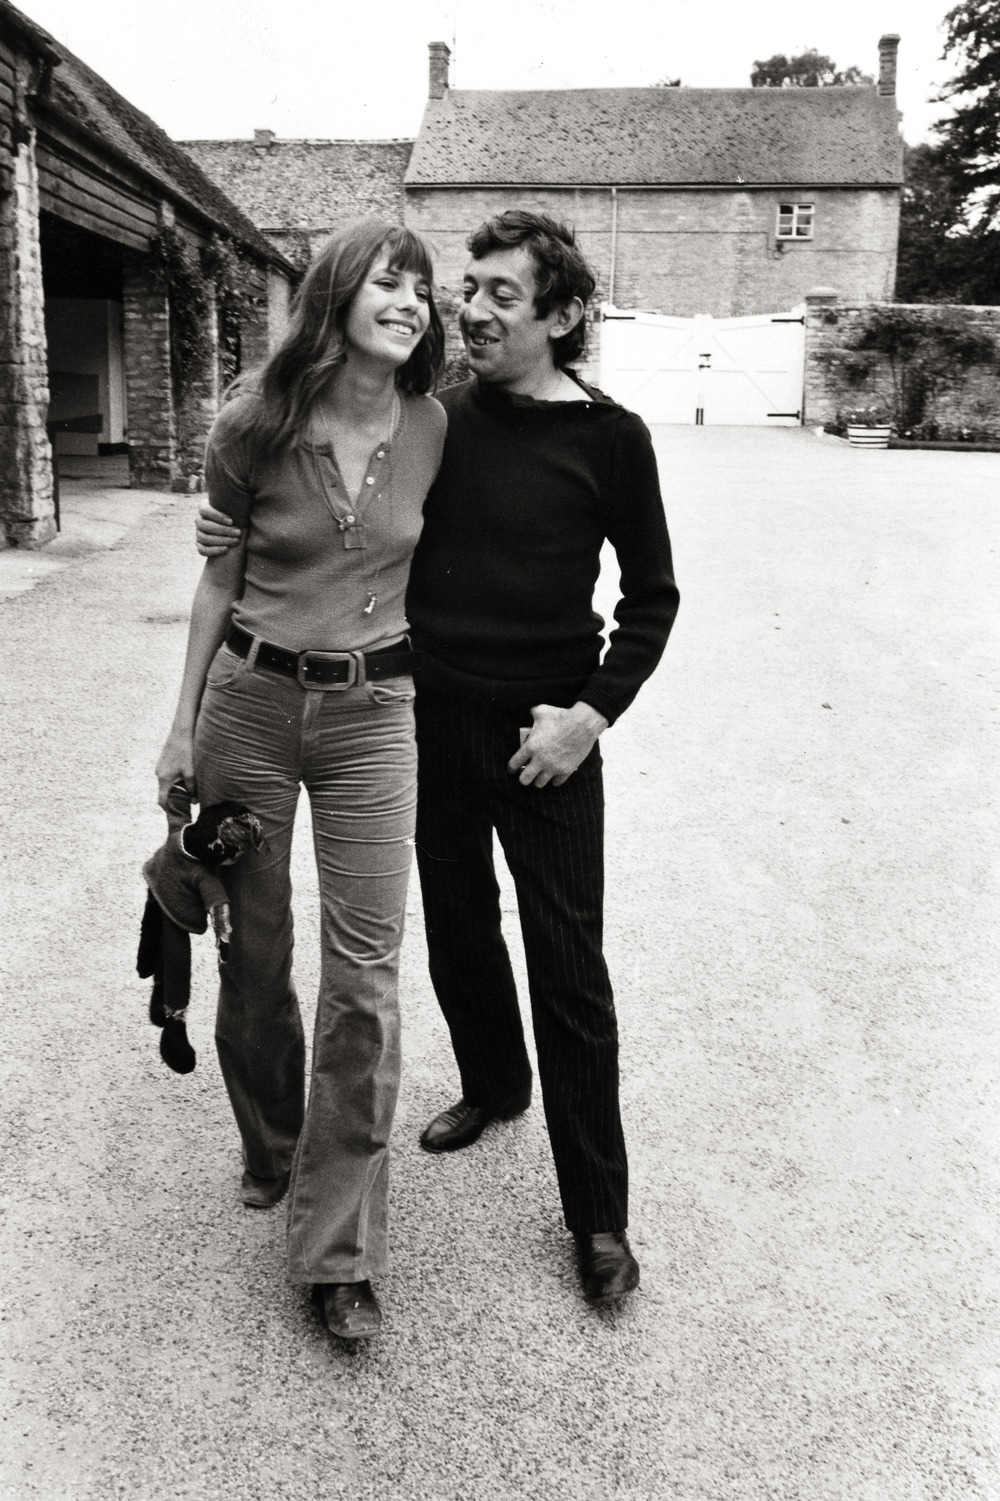 Jane Birkin and Serge Gainsbourg. Oxford 1969  Photograph by Frank Habicht